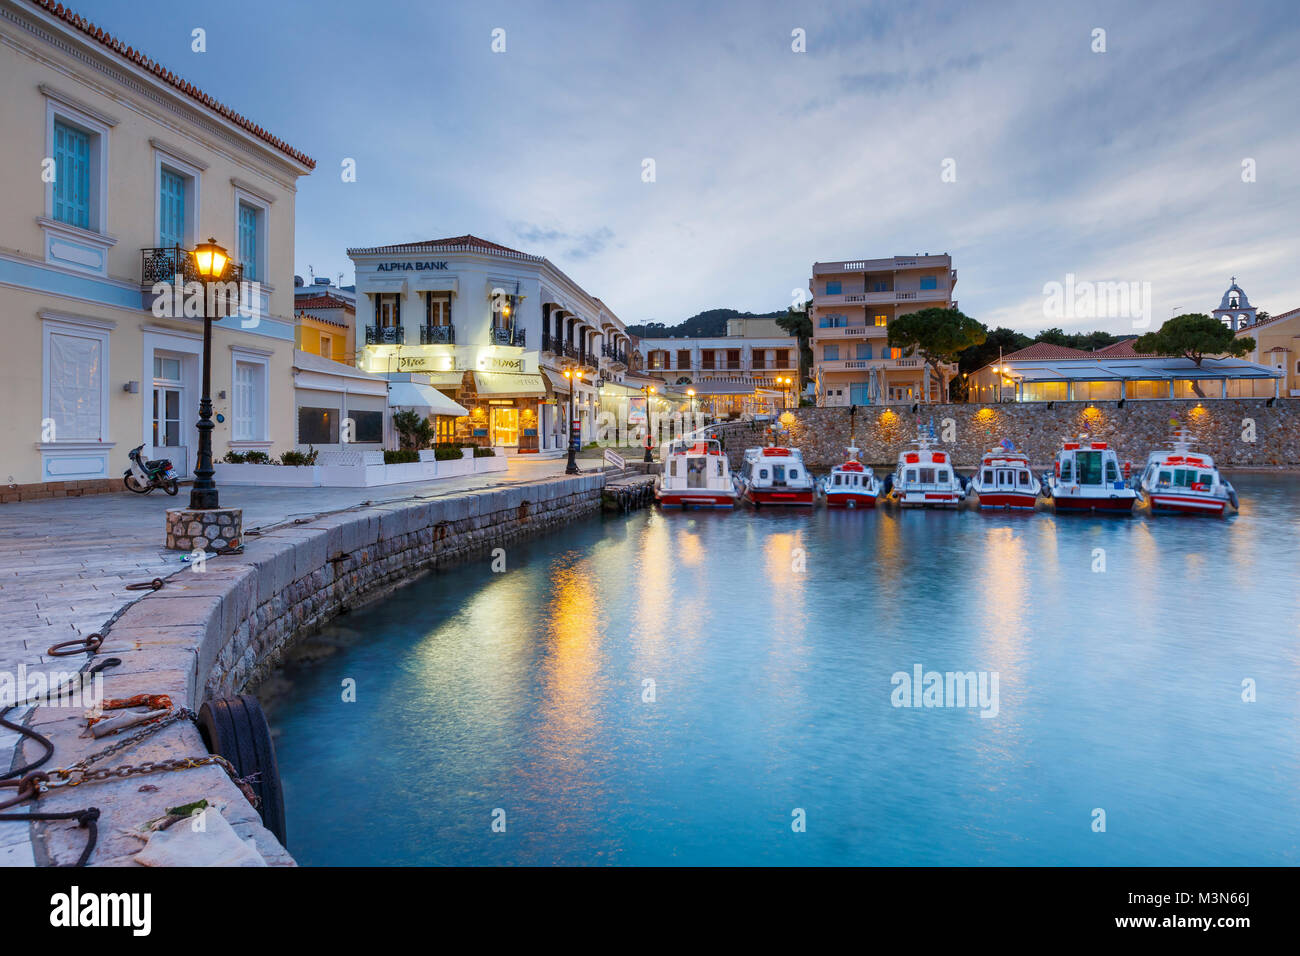 Houses in the harbor of Spetses, Greece. - Stock Image